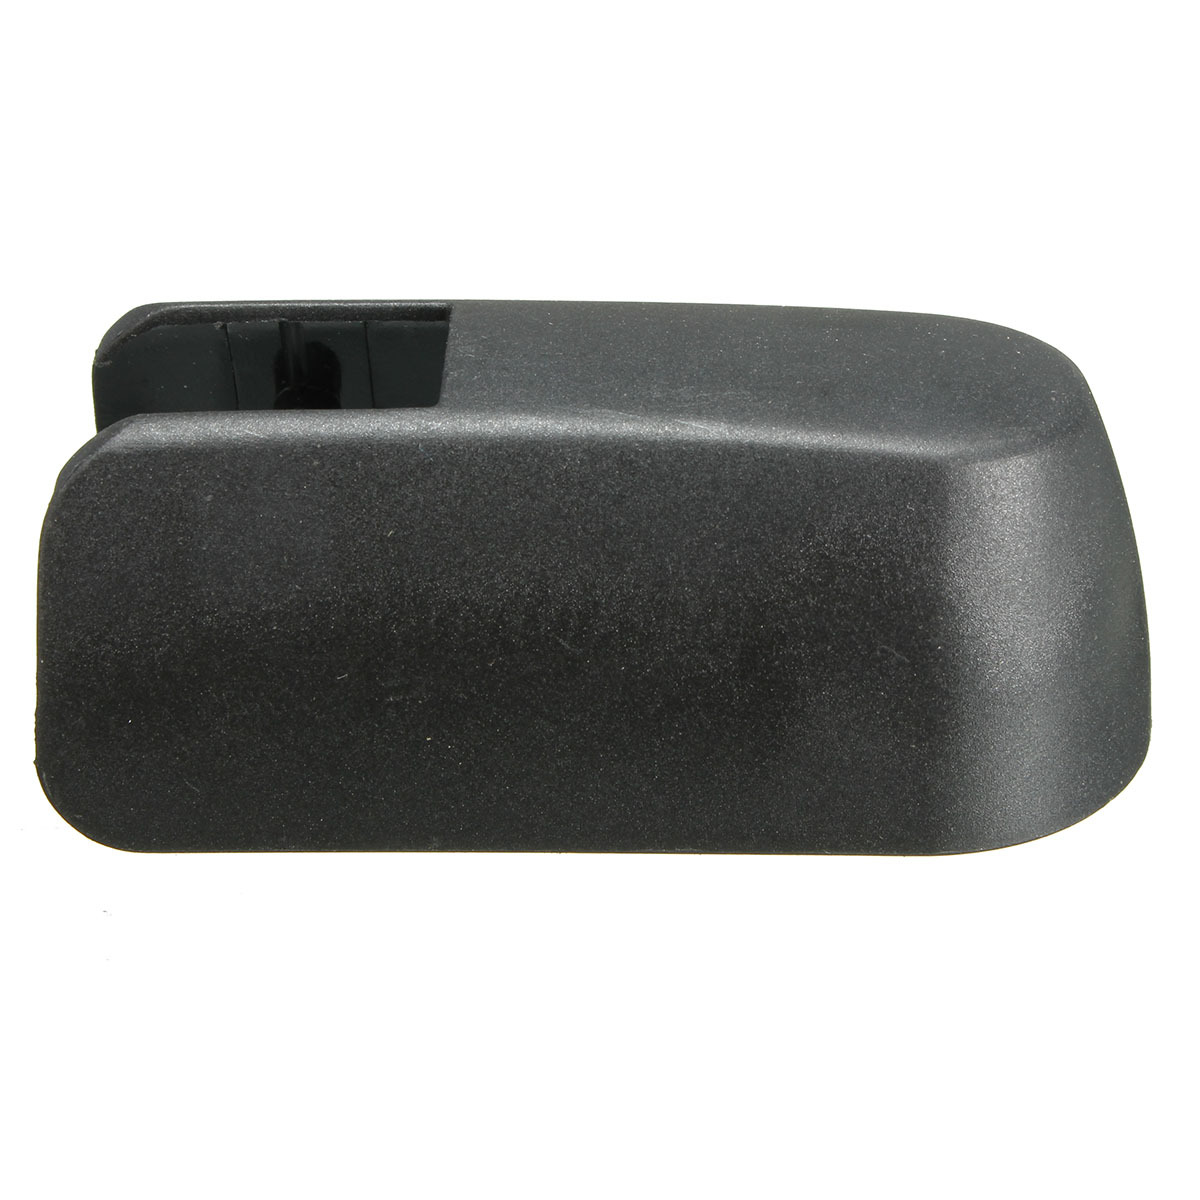 Rear Windshield Wiper Arm Cover For Honda Element Odyssey